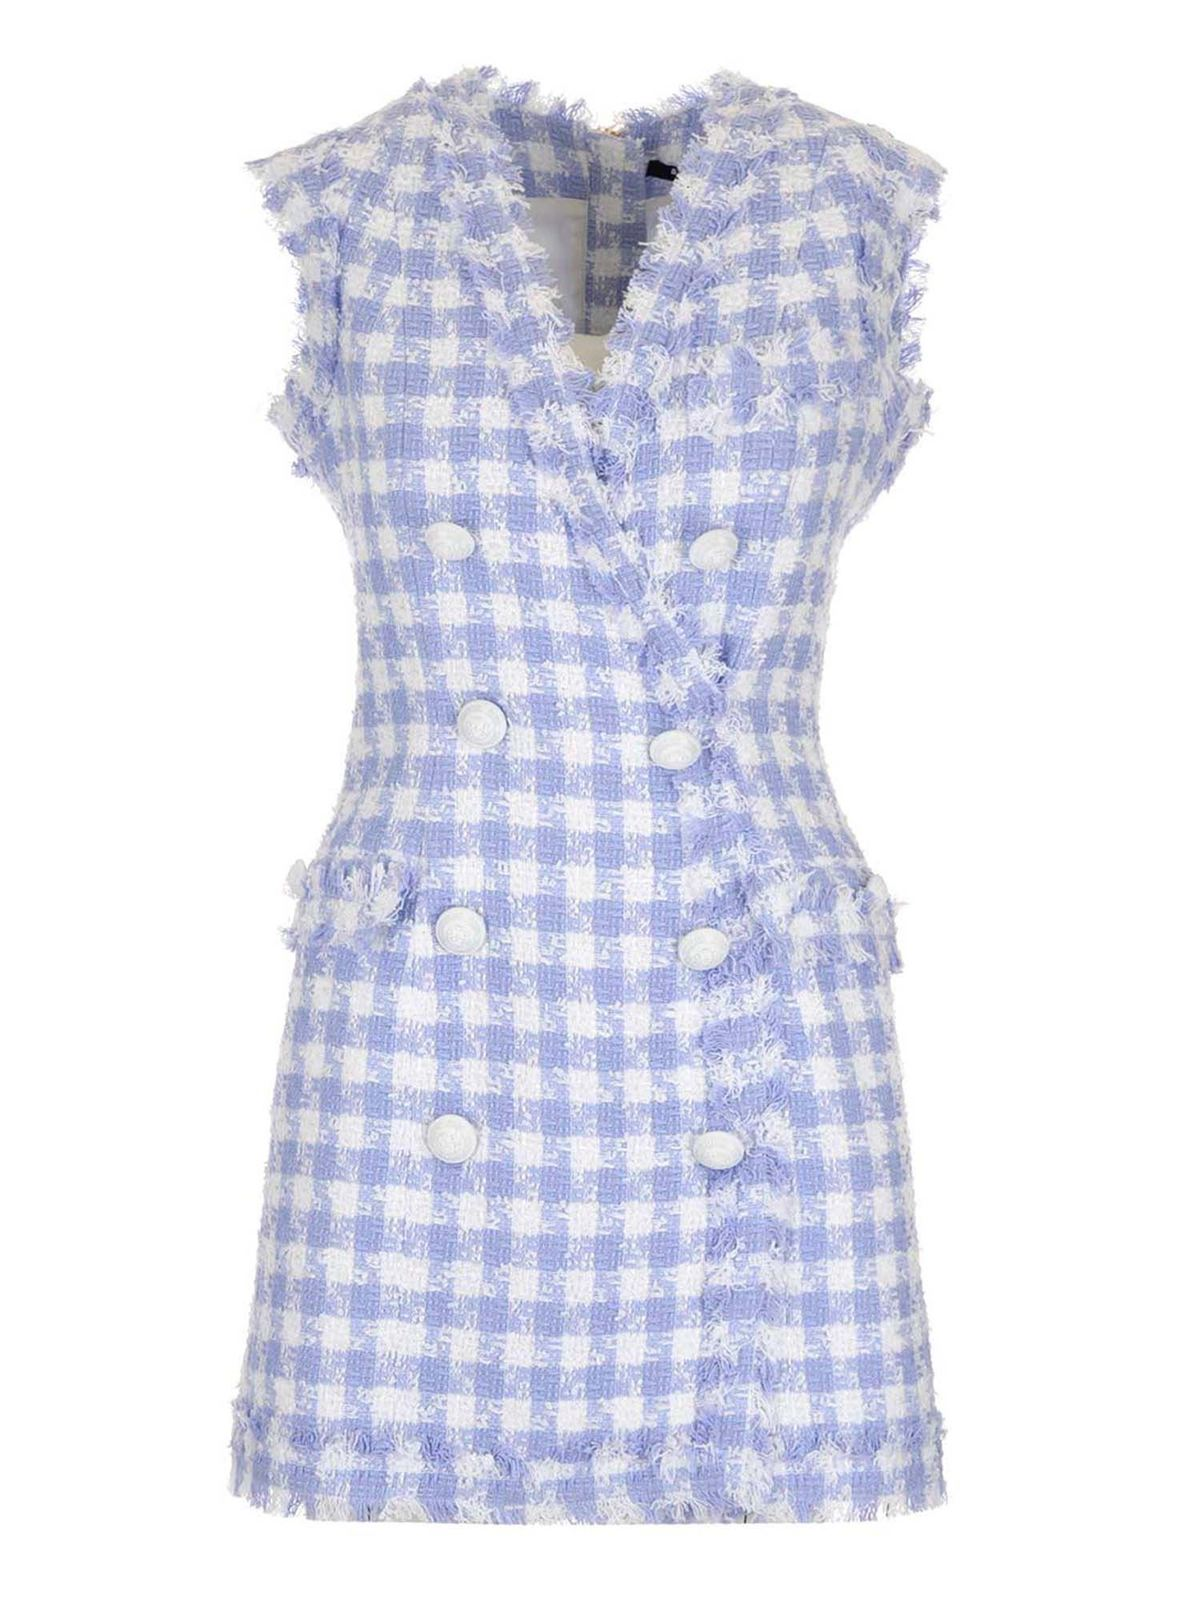 Balmain Checked Dress In Light Blue And White